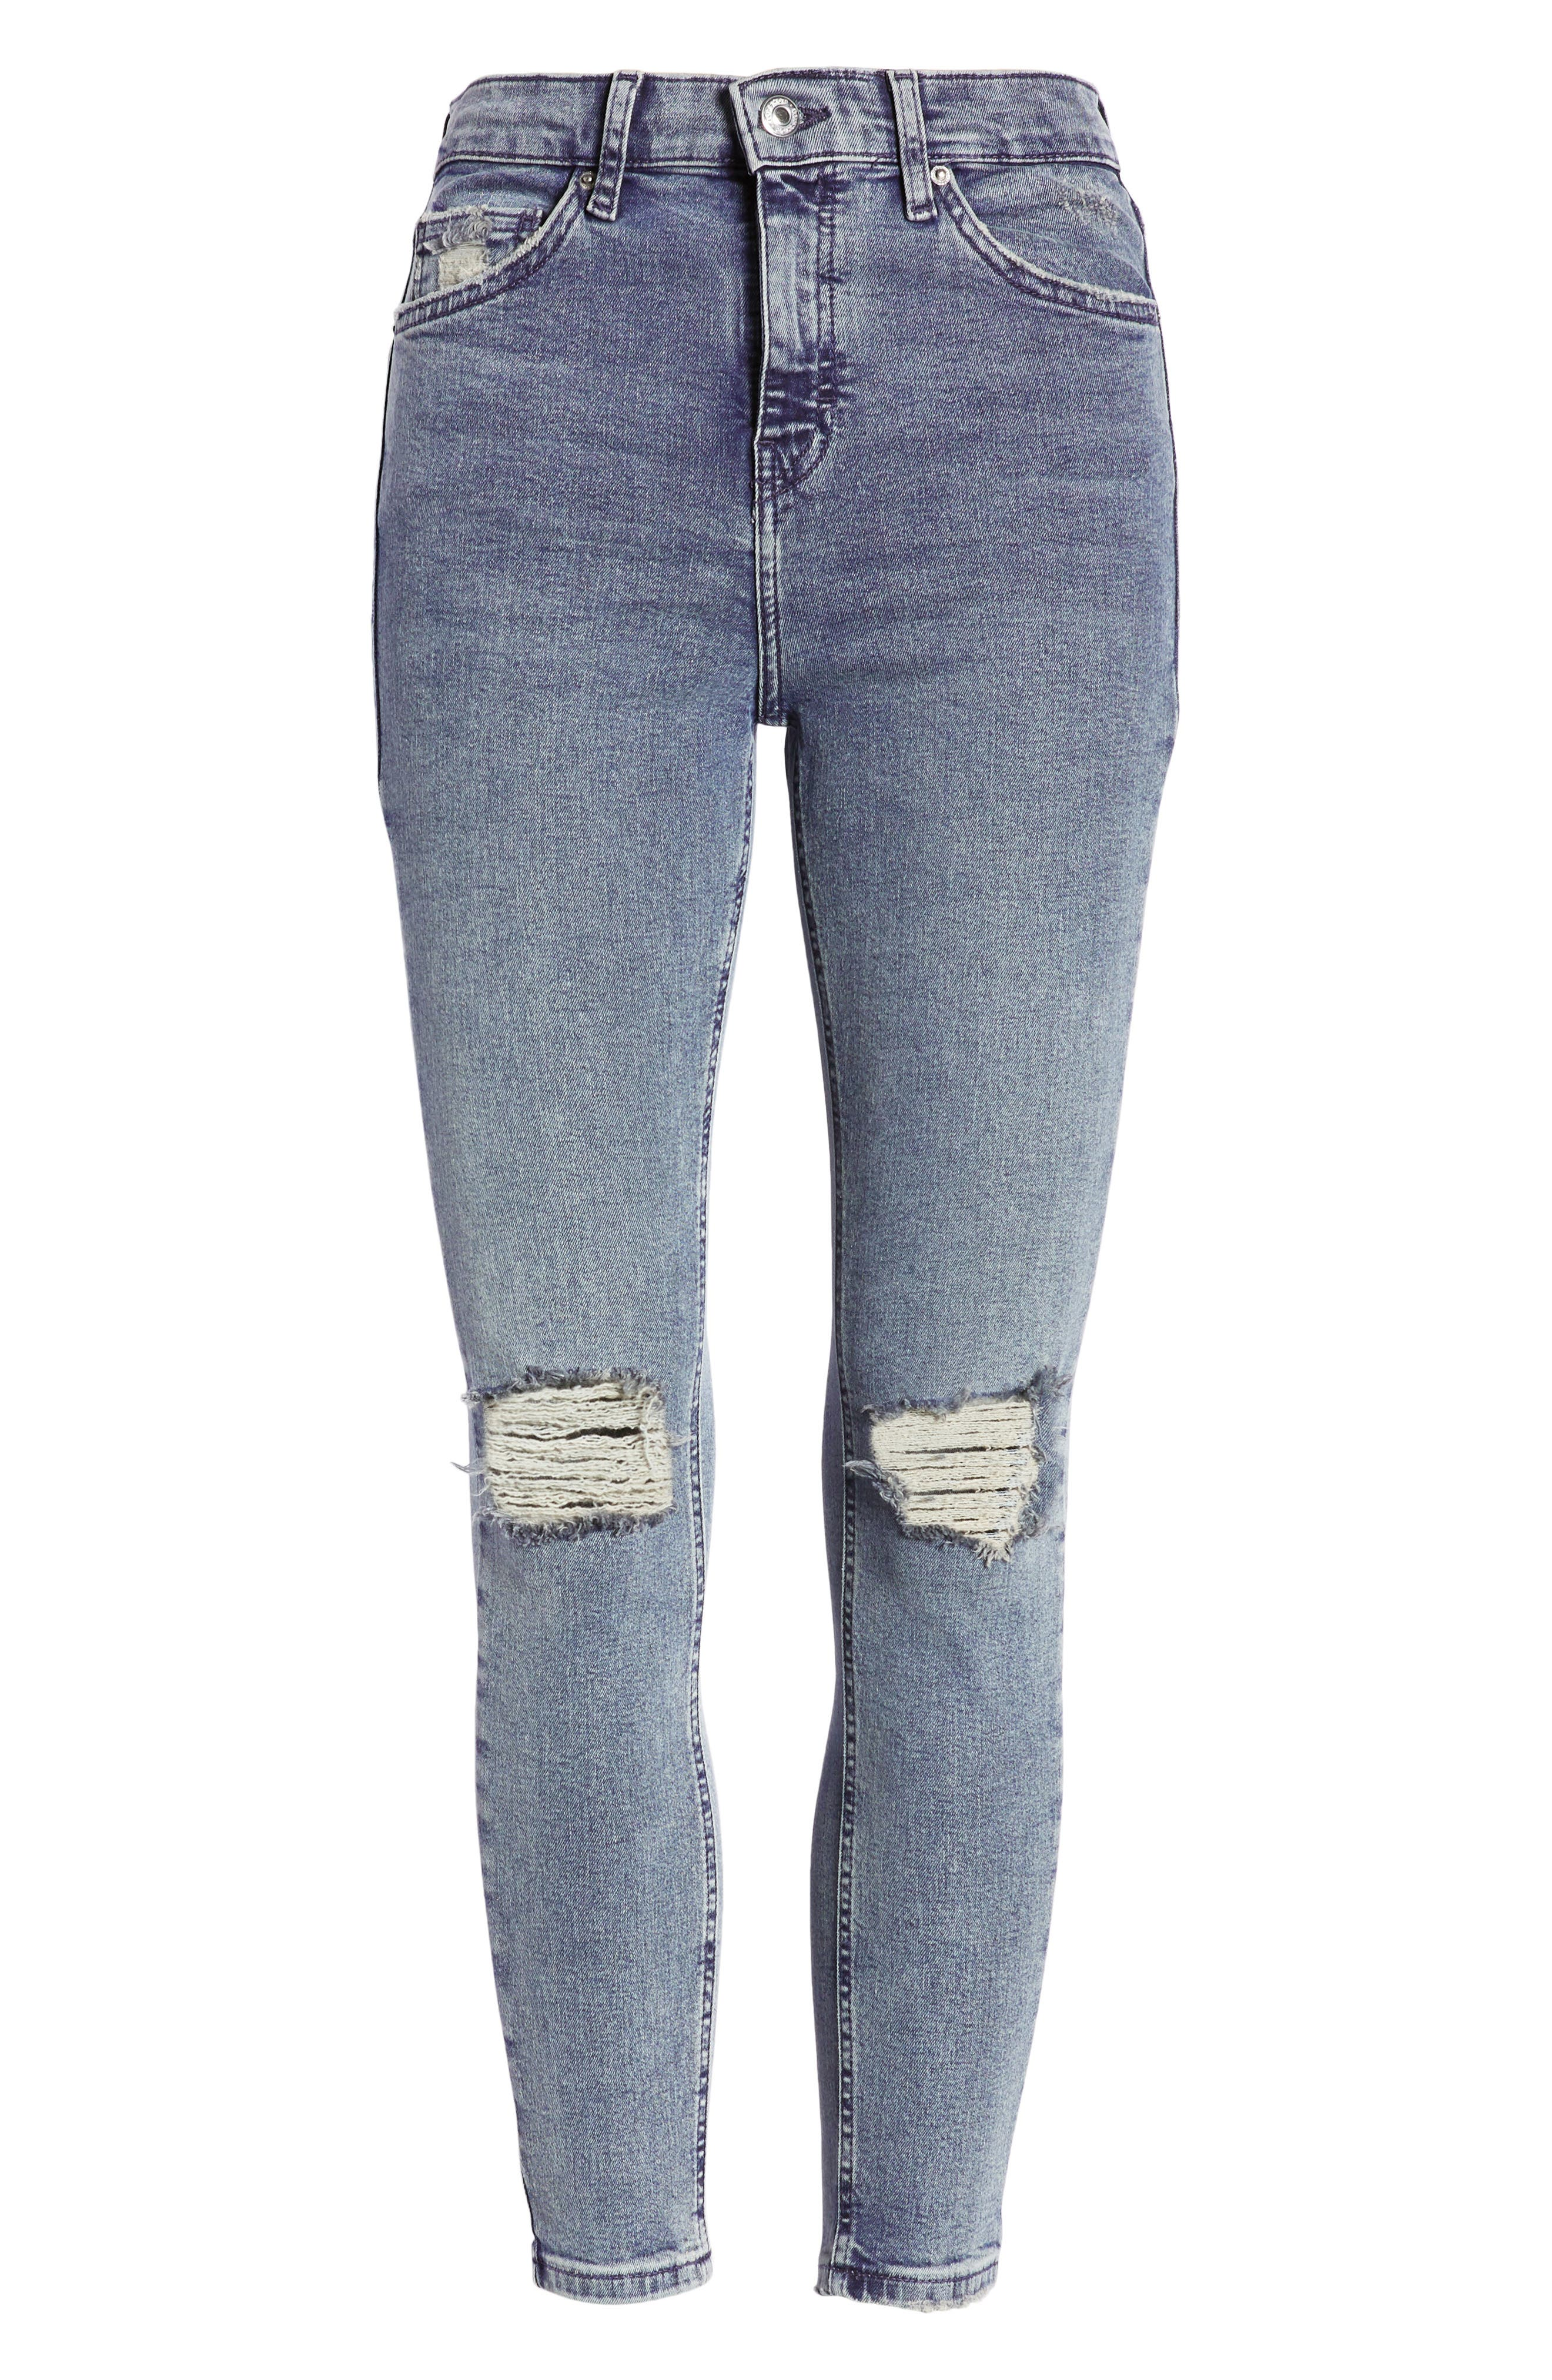 TOPSHOP,                             Jamie Ripped Skinny Jeans,                             Alternate thumbnail 7, color,                             GREY